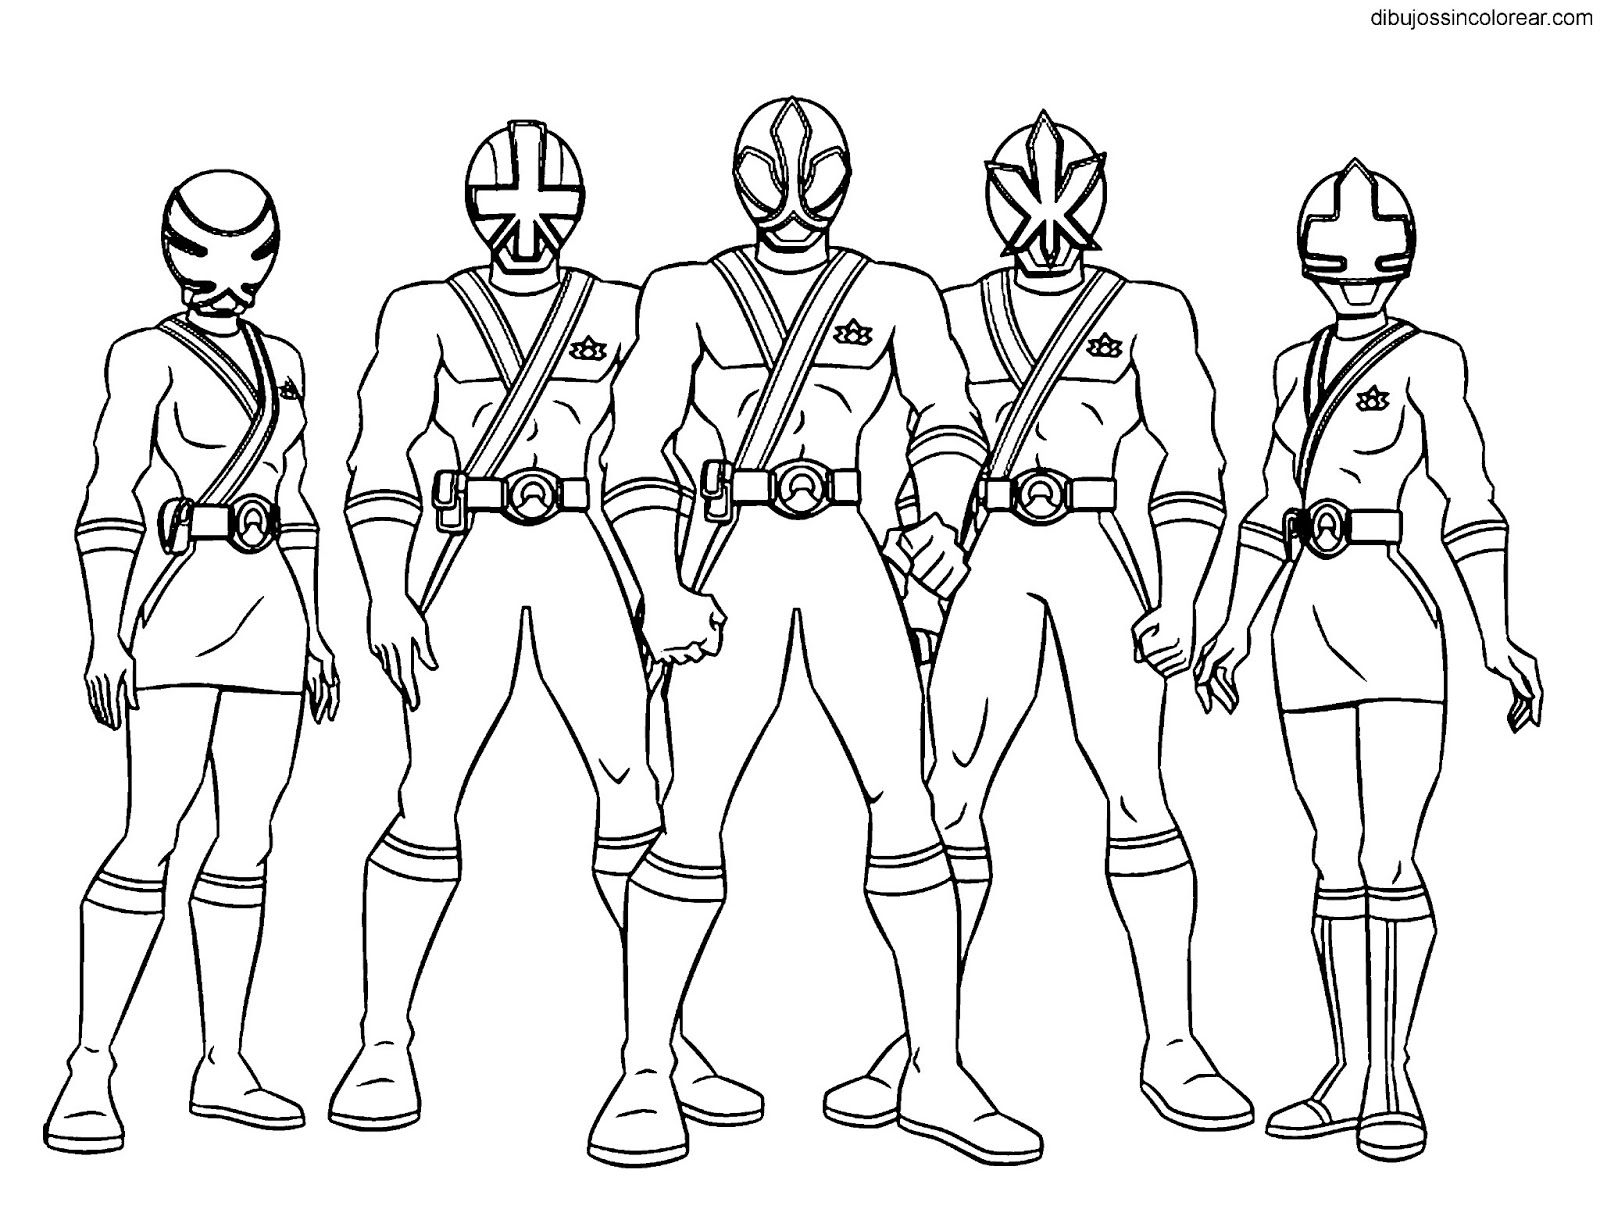 Online coloring power rangers - Get The Latest Free Power Rangers Coloring Pages Images Favorite Coloring Pages To Print Online